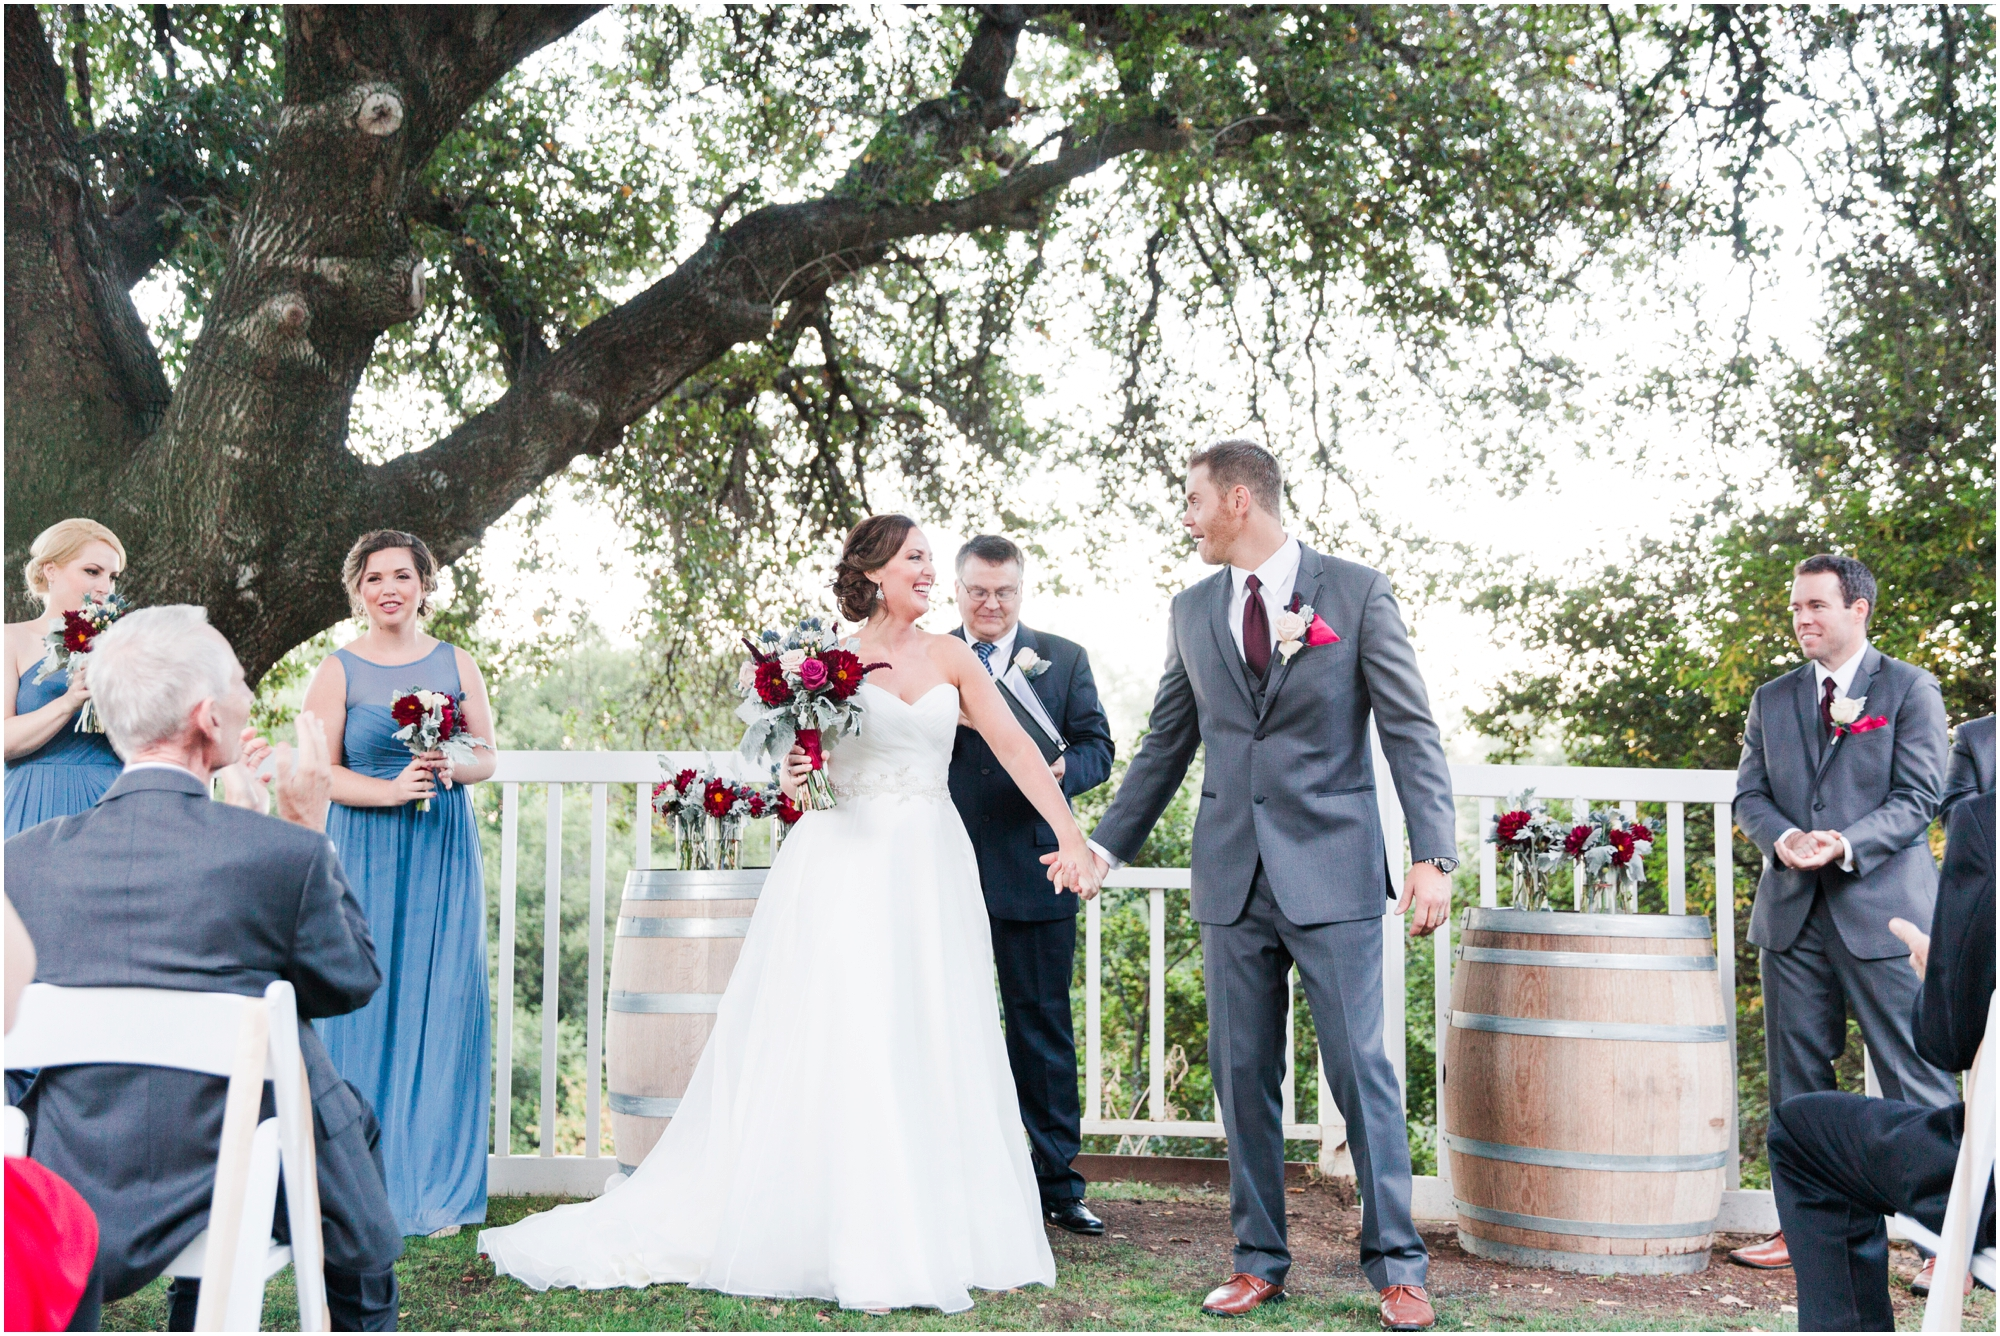 Picchetti Winery wedding pictures by Briana Calderon Photography_0479.jpg